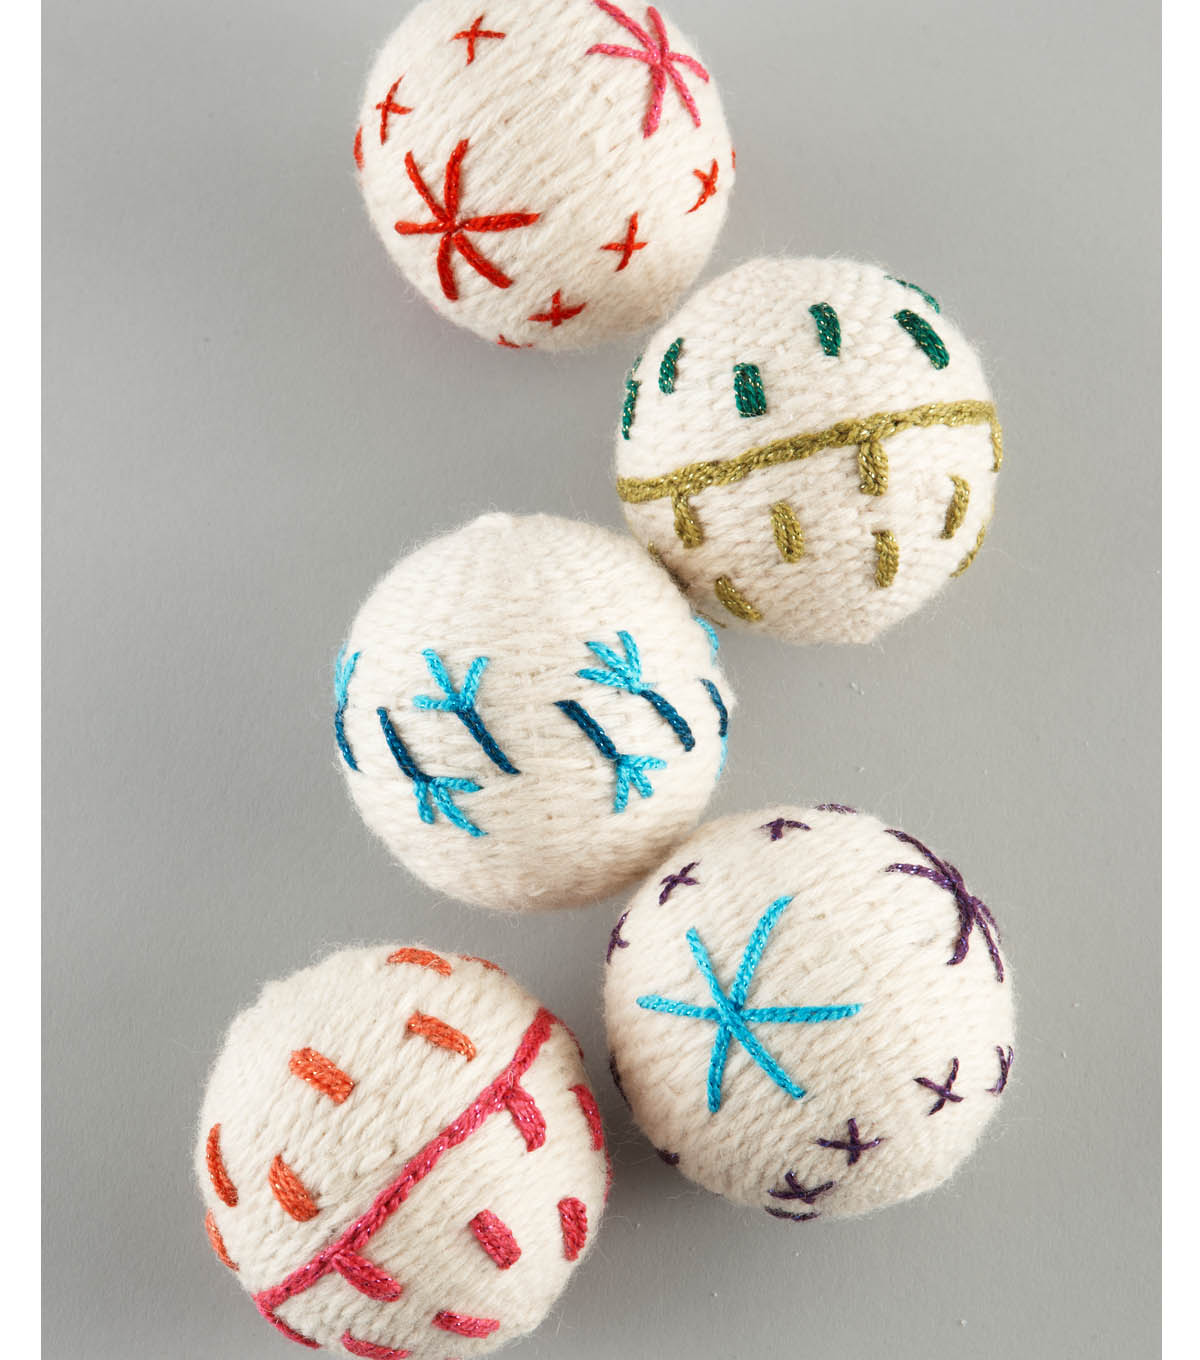 Bonbons Fisherman\u0027s Wool Yarn Crafted Ornaments